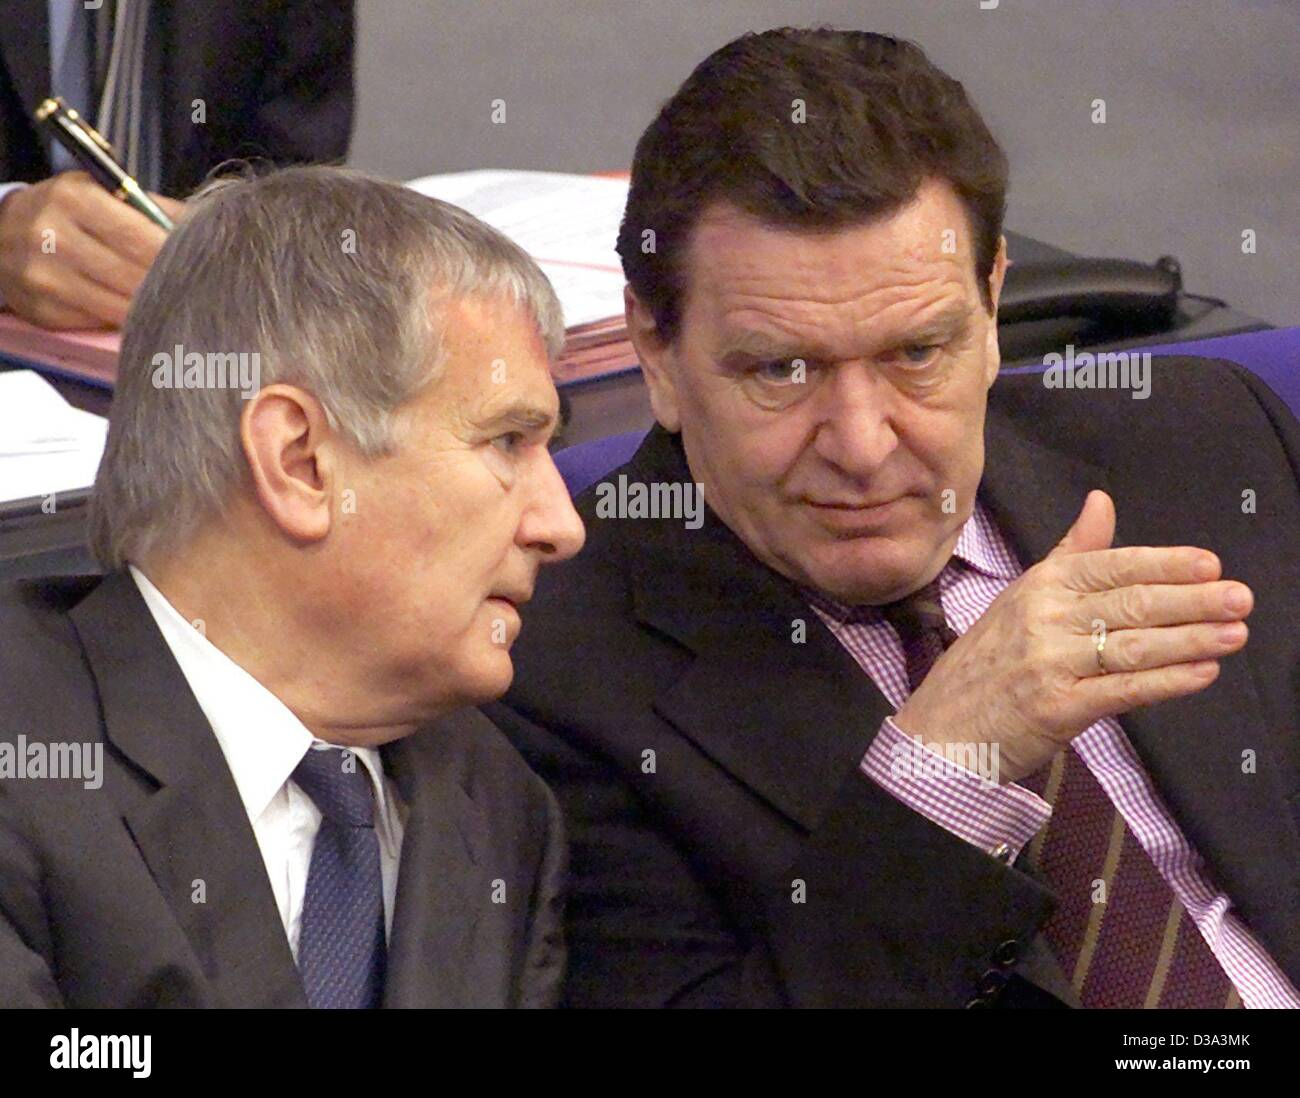 (dpa files) - German Chancellor Gerhard Schroeder (R) talks to Interior Minister Otto Schily in the Bundestag in Berlin, 5 April 2001. Stock Photo